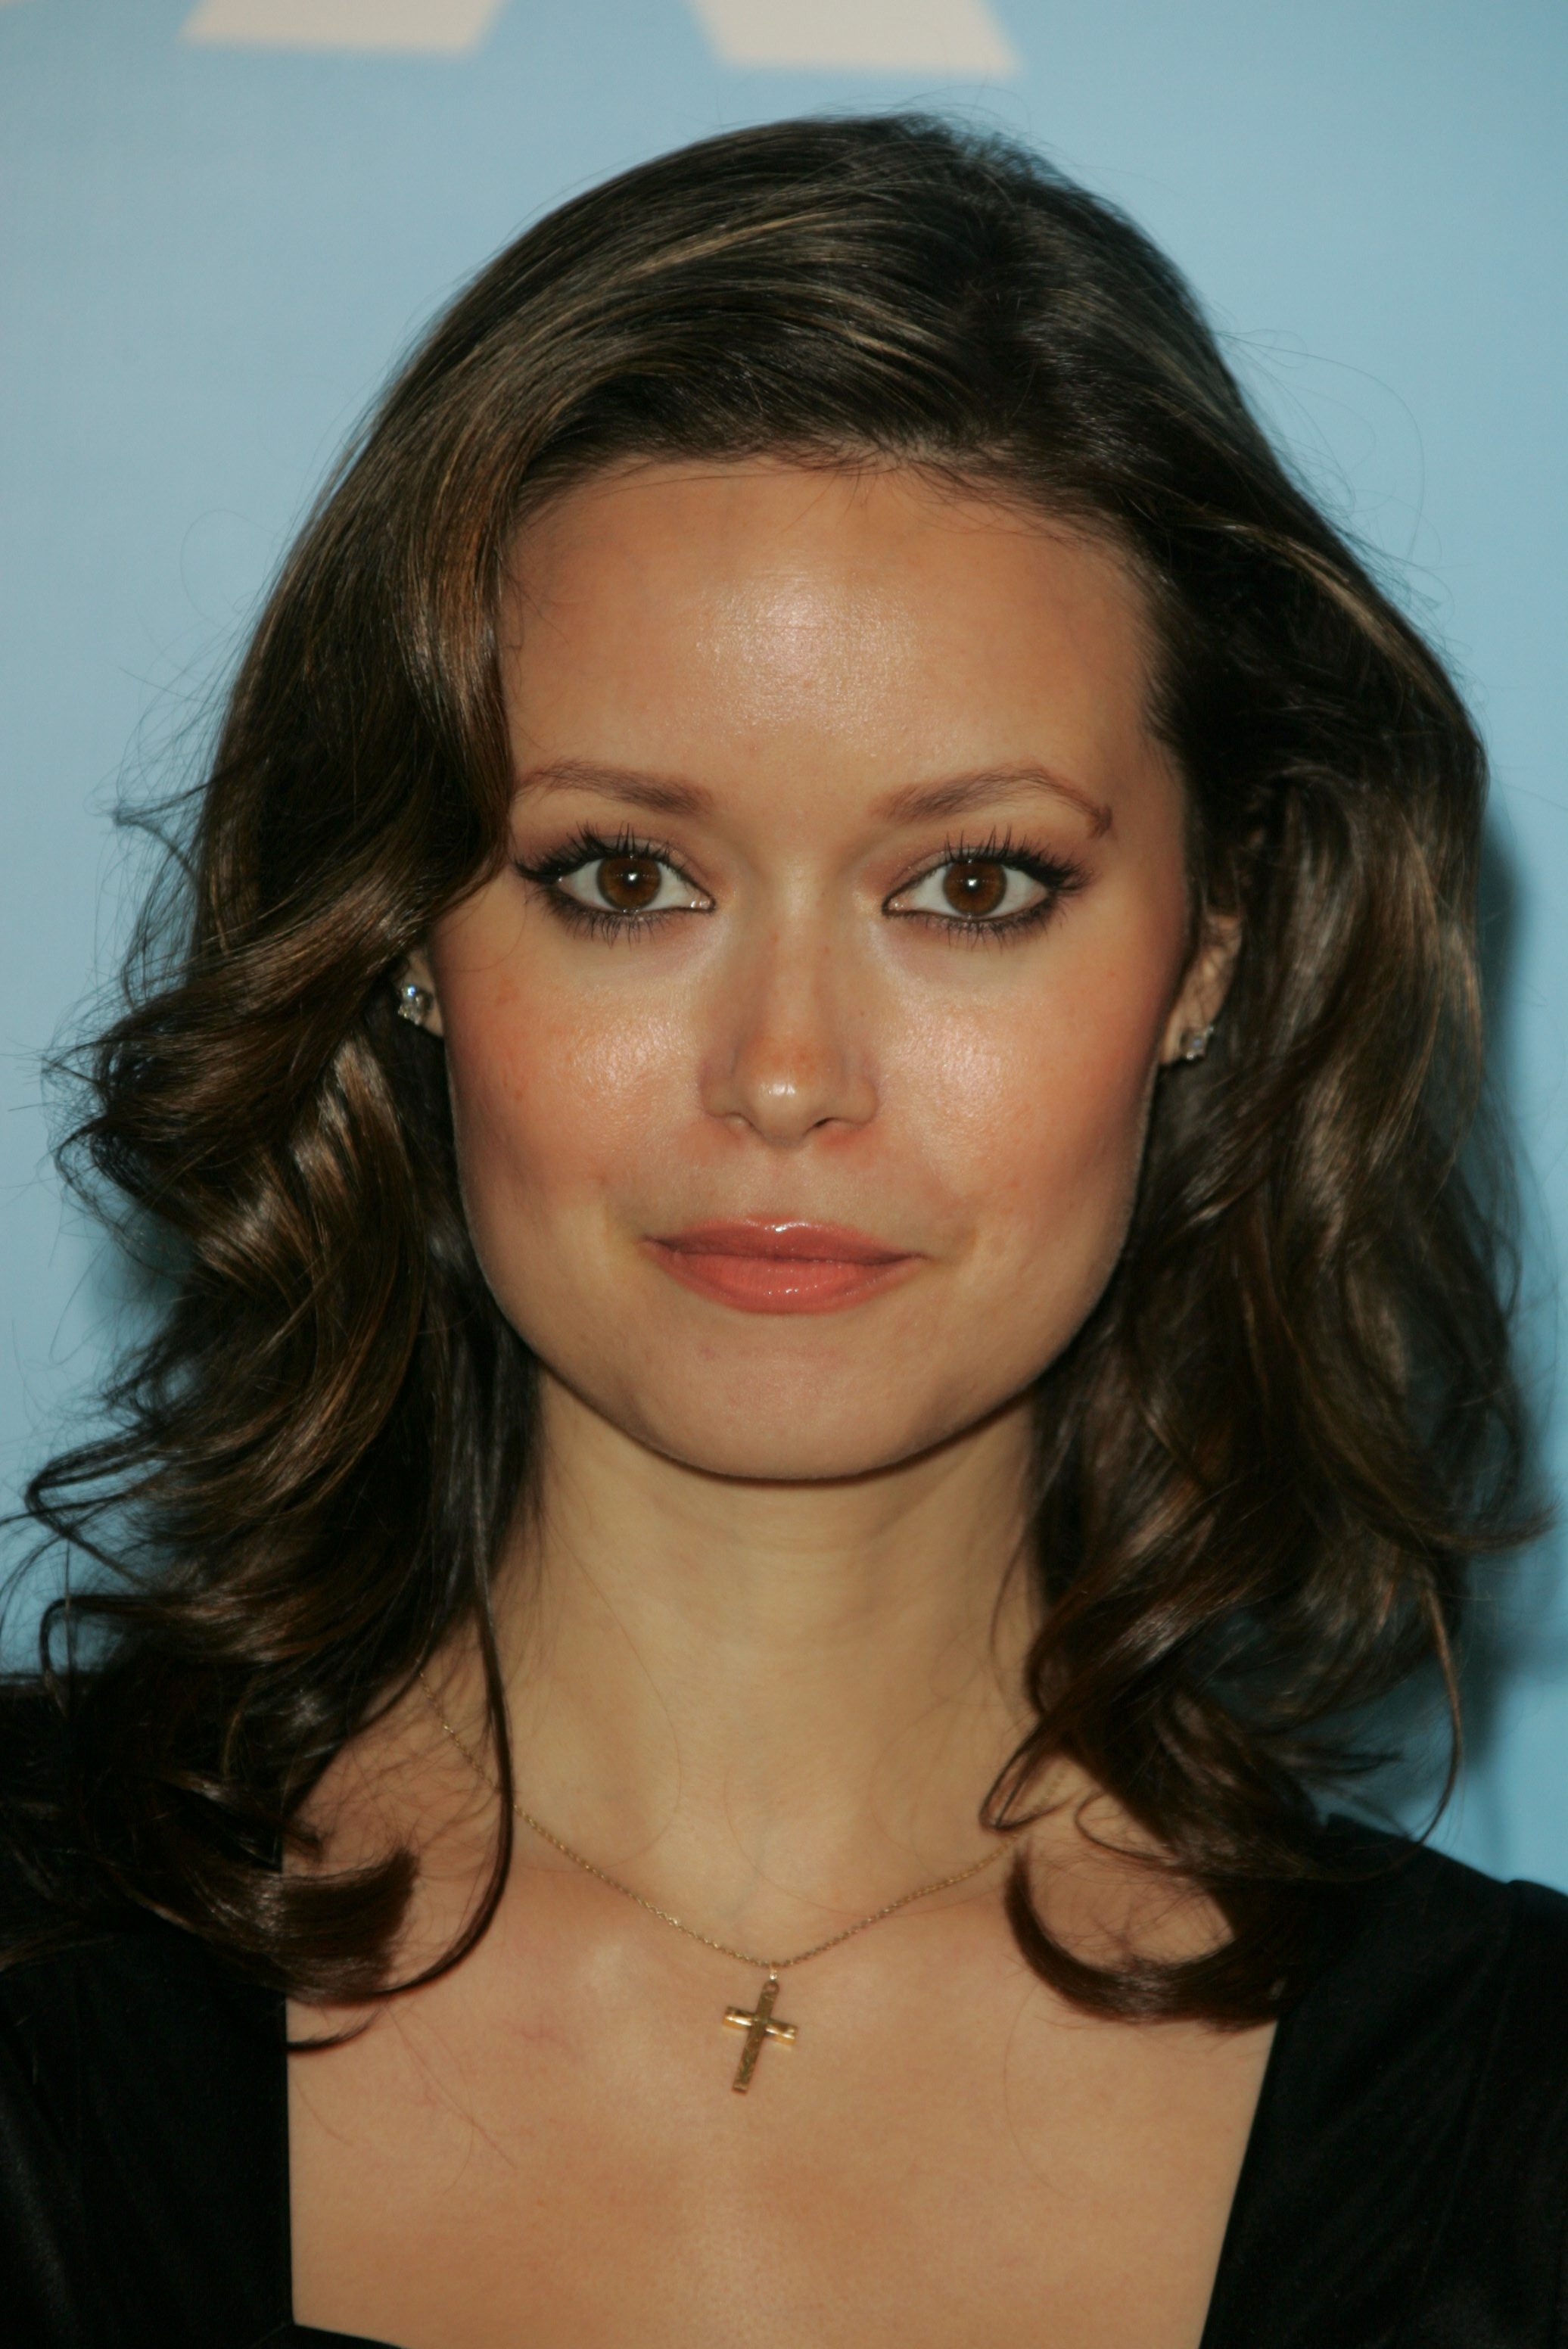 Fox Upfronts New York City - May 17, 2007 - Summer Glau at ...